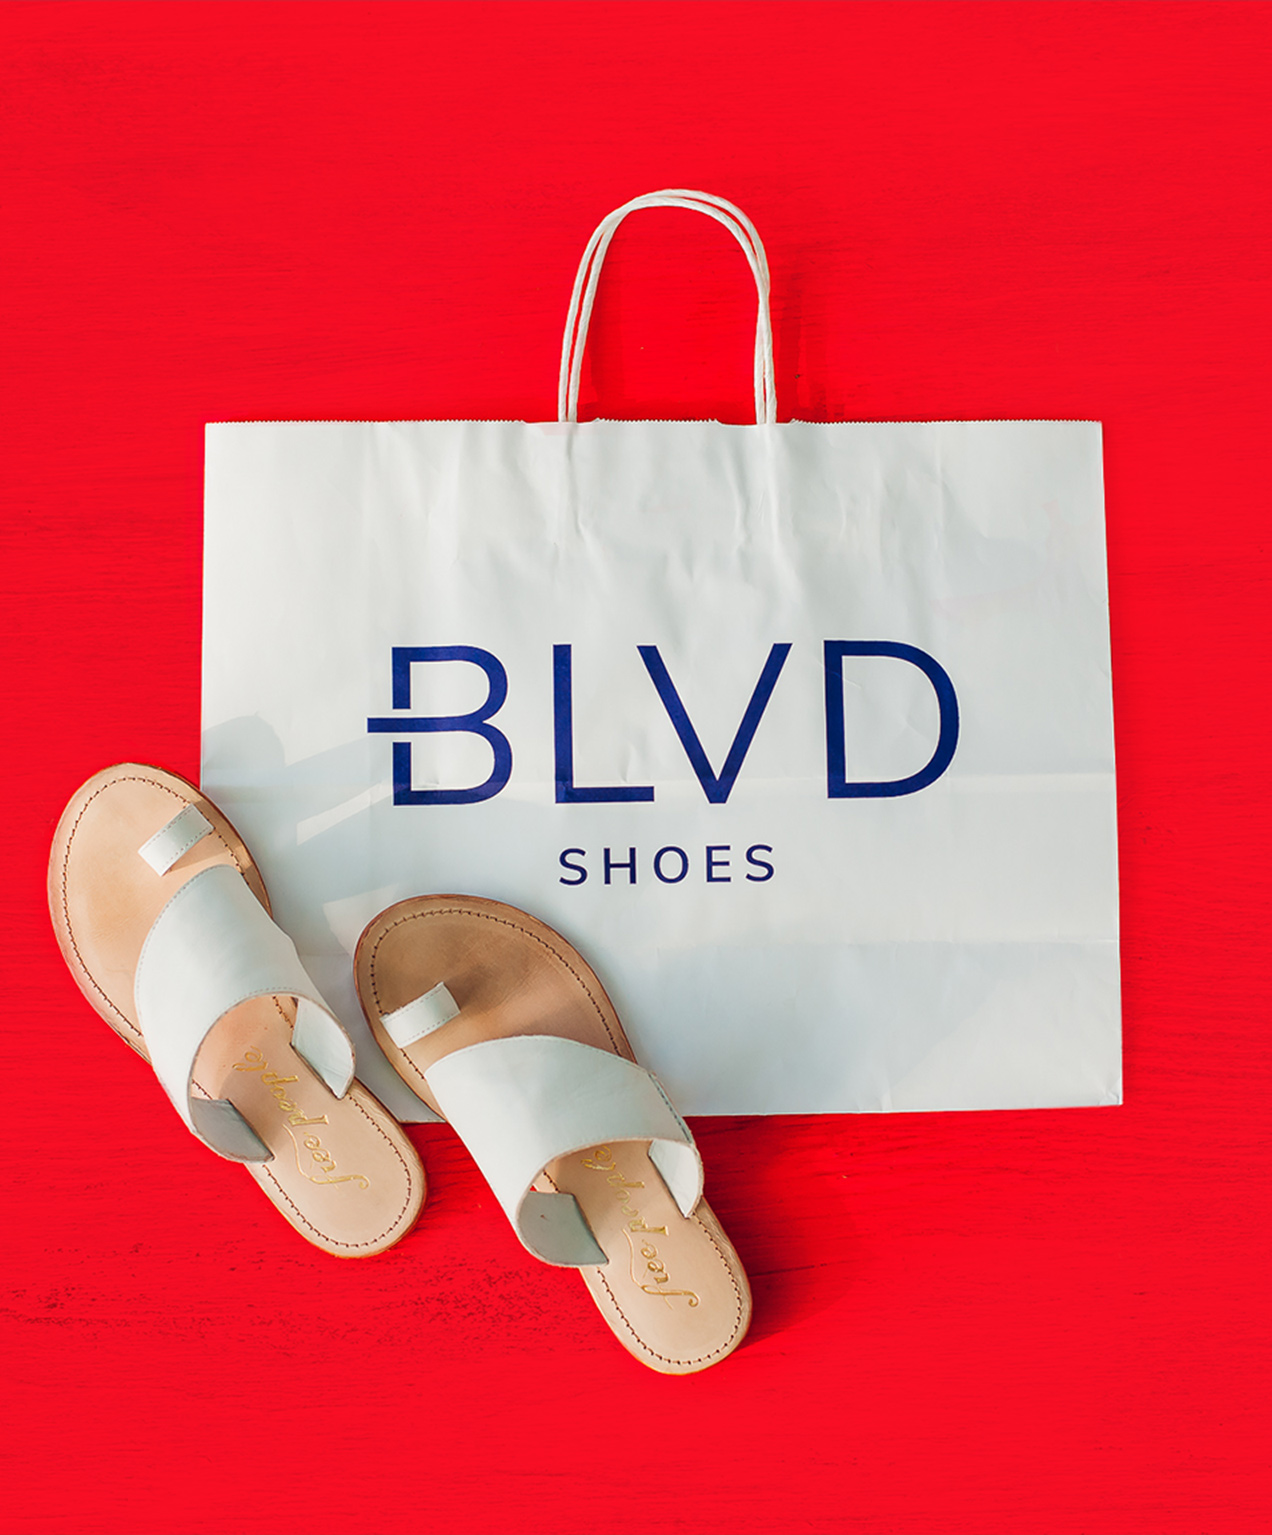 retail shoe store marketing blvd branded bags